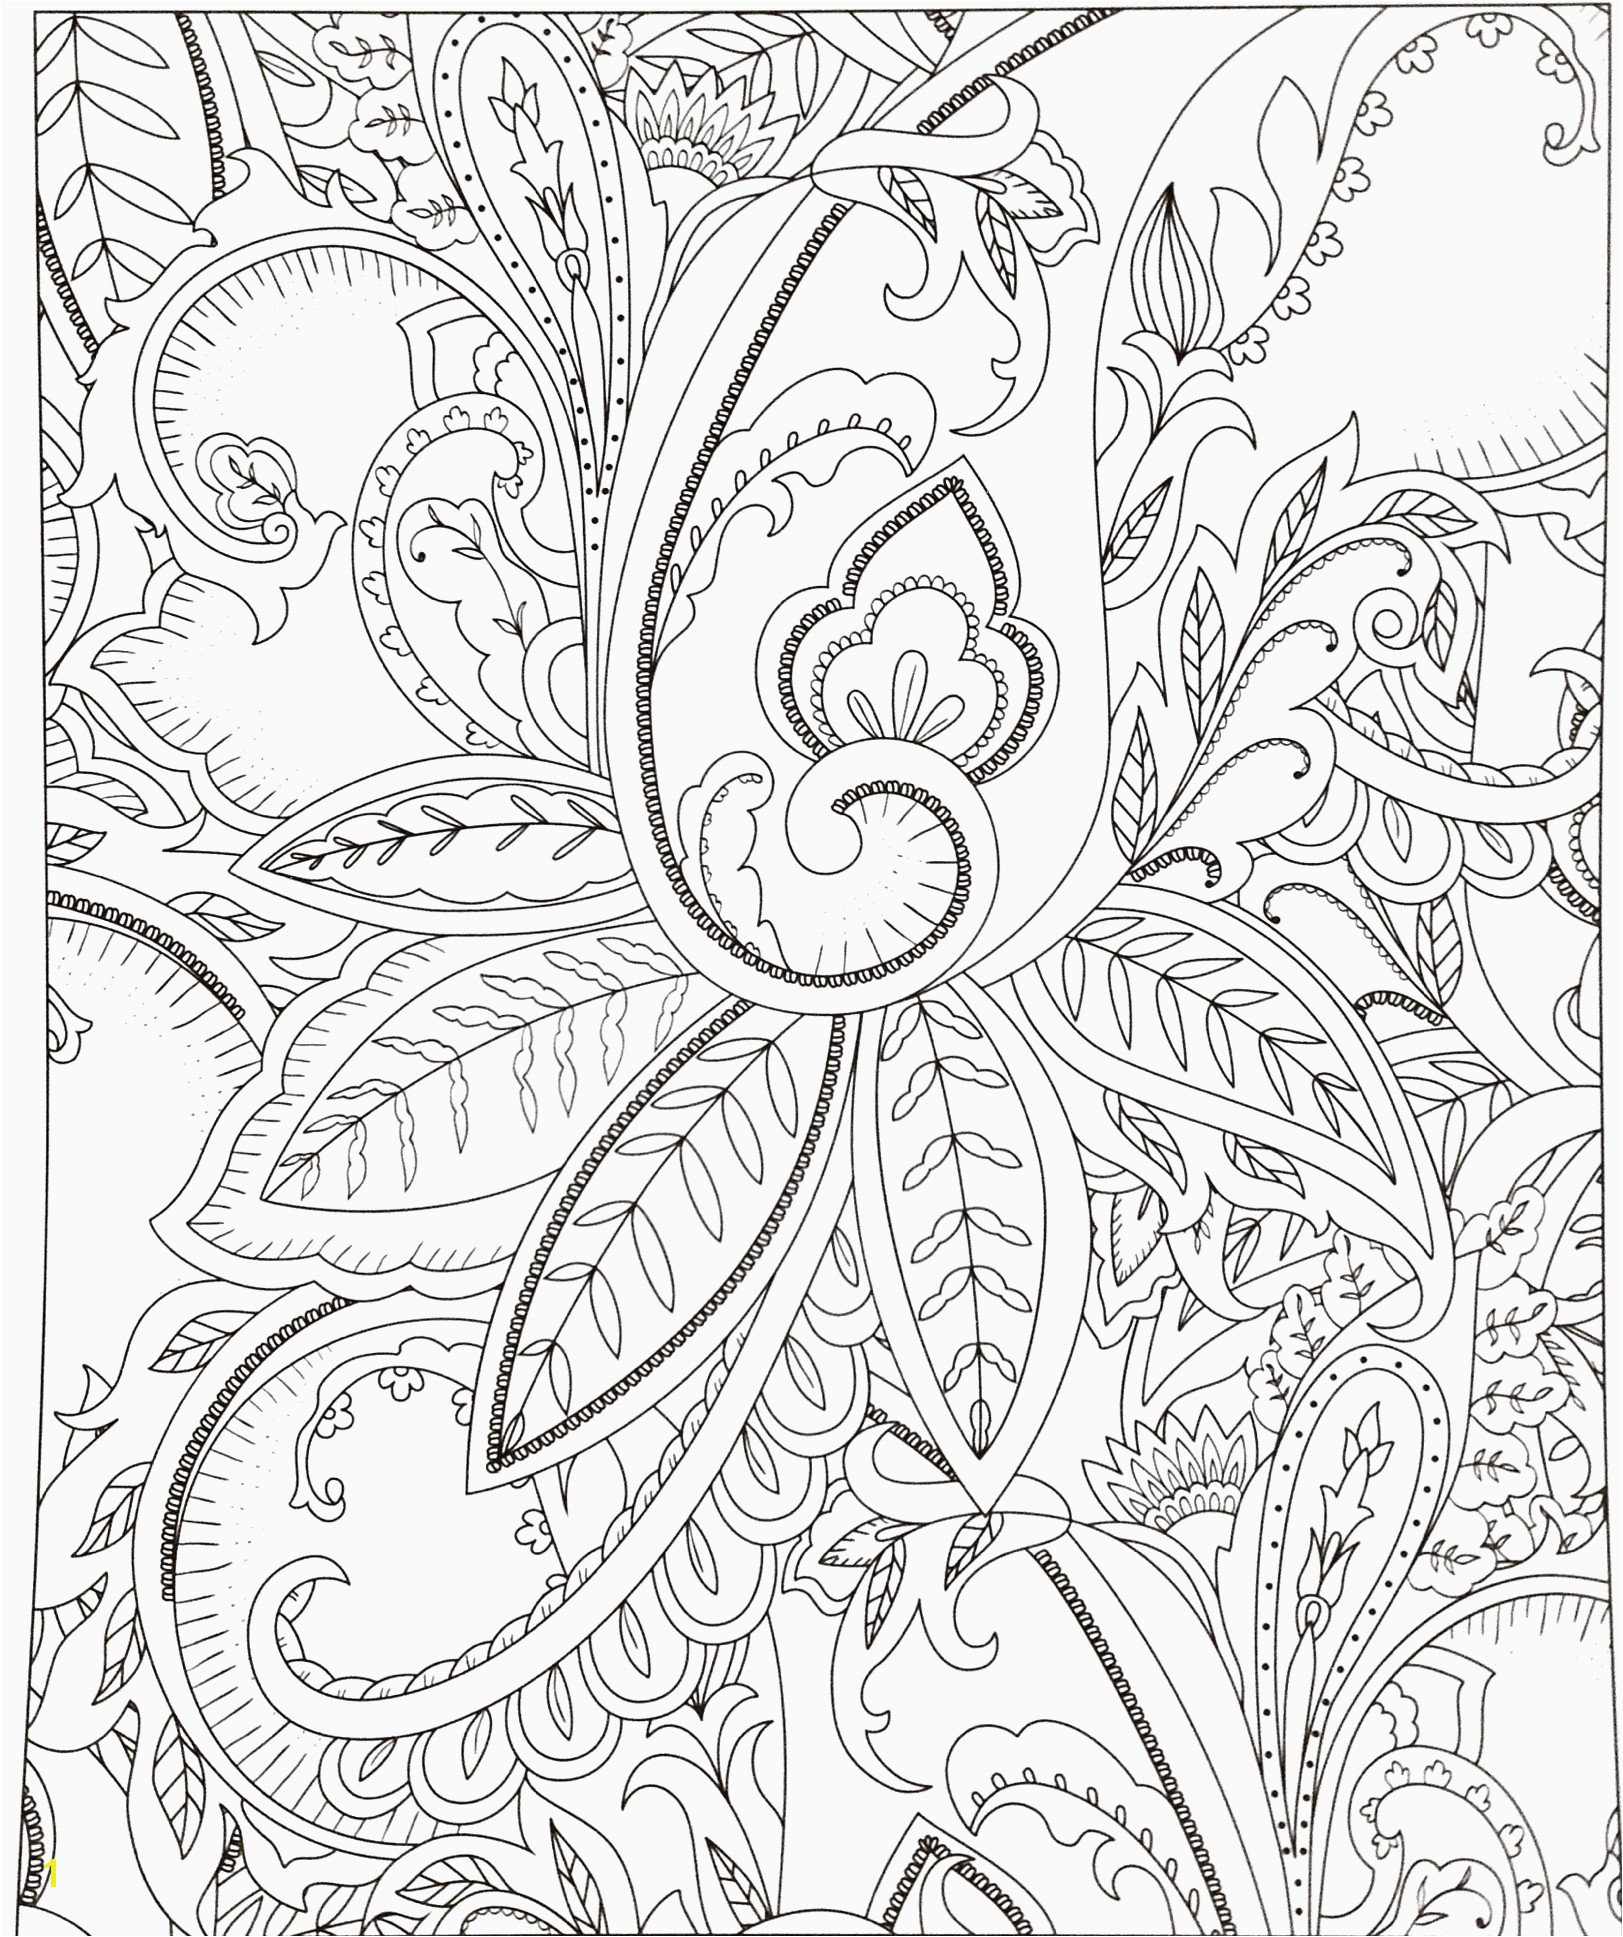 Harry Potter Ausmalbilder Beau Coloring Pages Harry Potter Vine Coloring Pages Unique Harry Potter